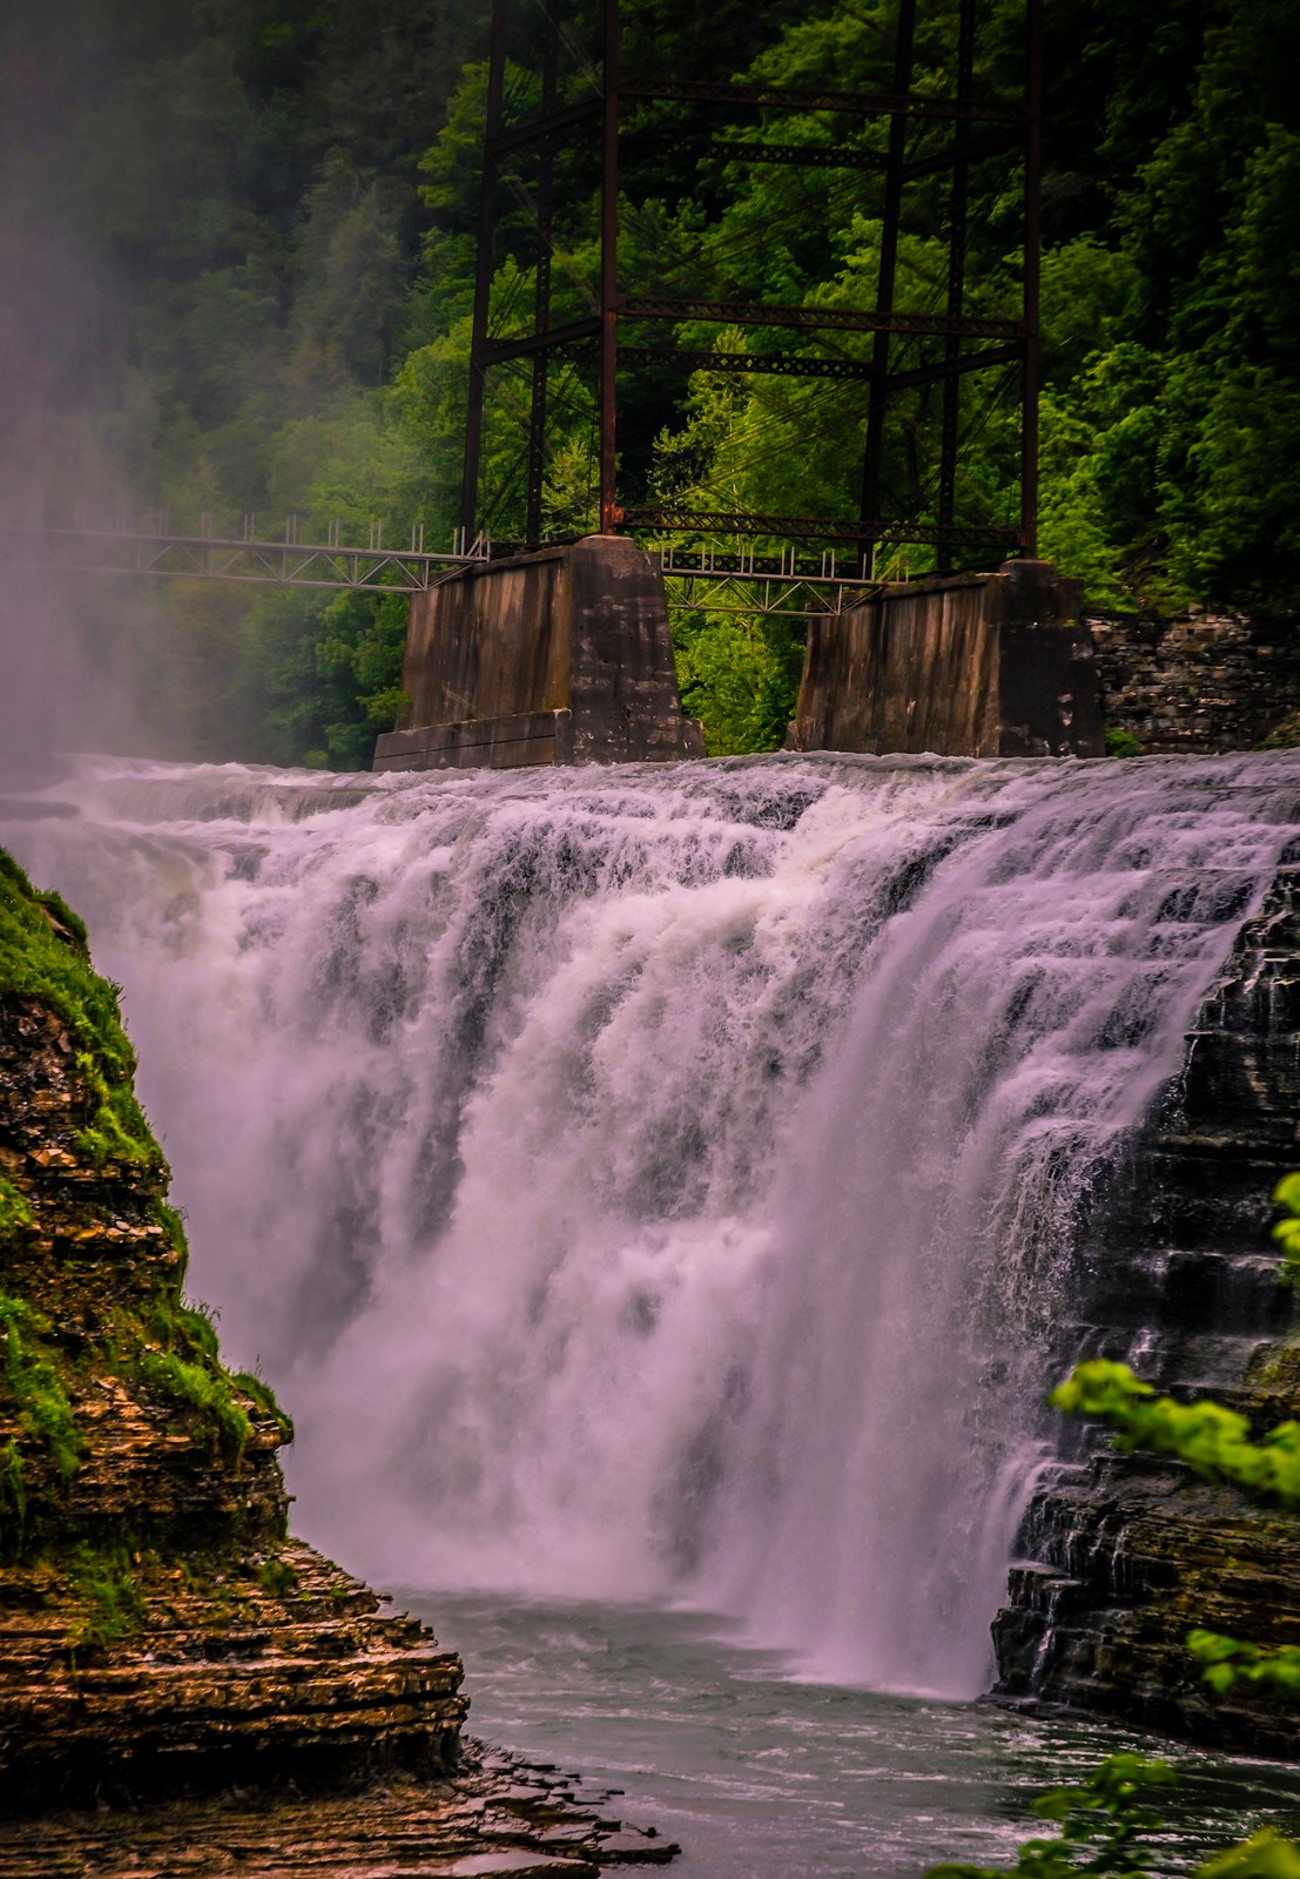 I love the falls at Letchworth State Park. There are 3 waterfalls in the State Park and this one is the 3rd one.